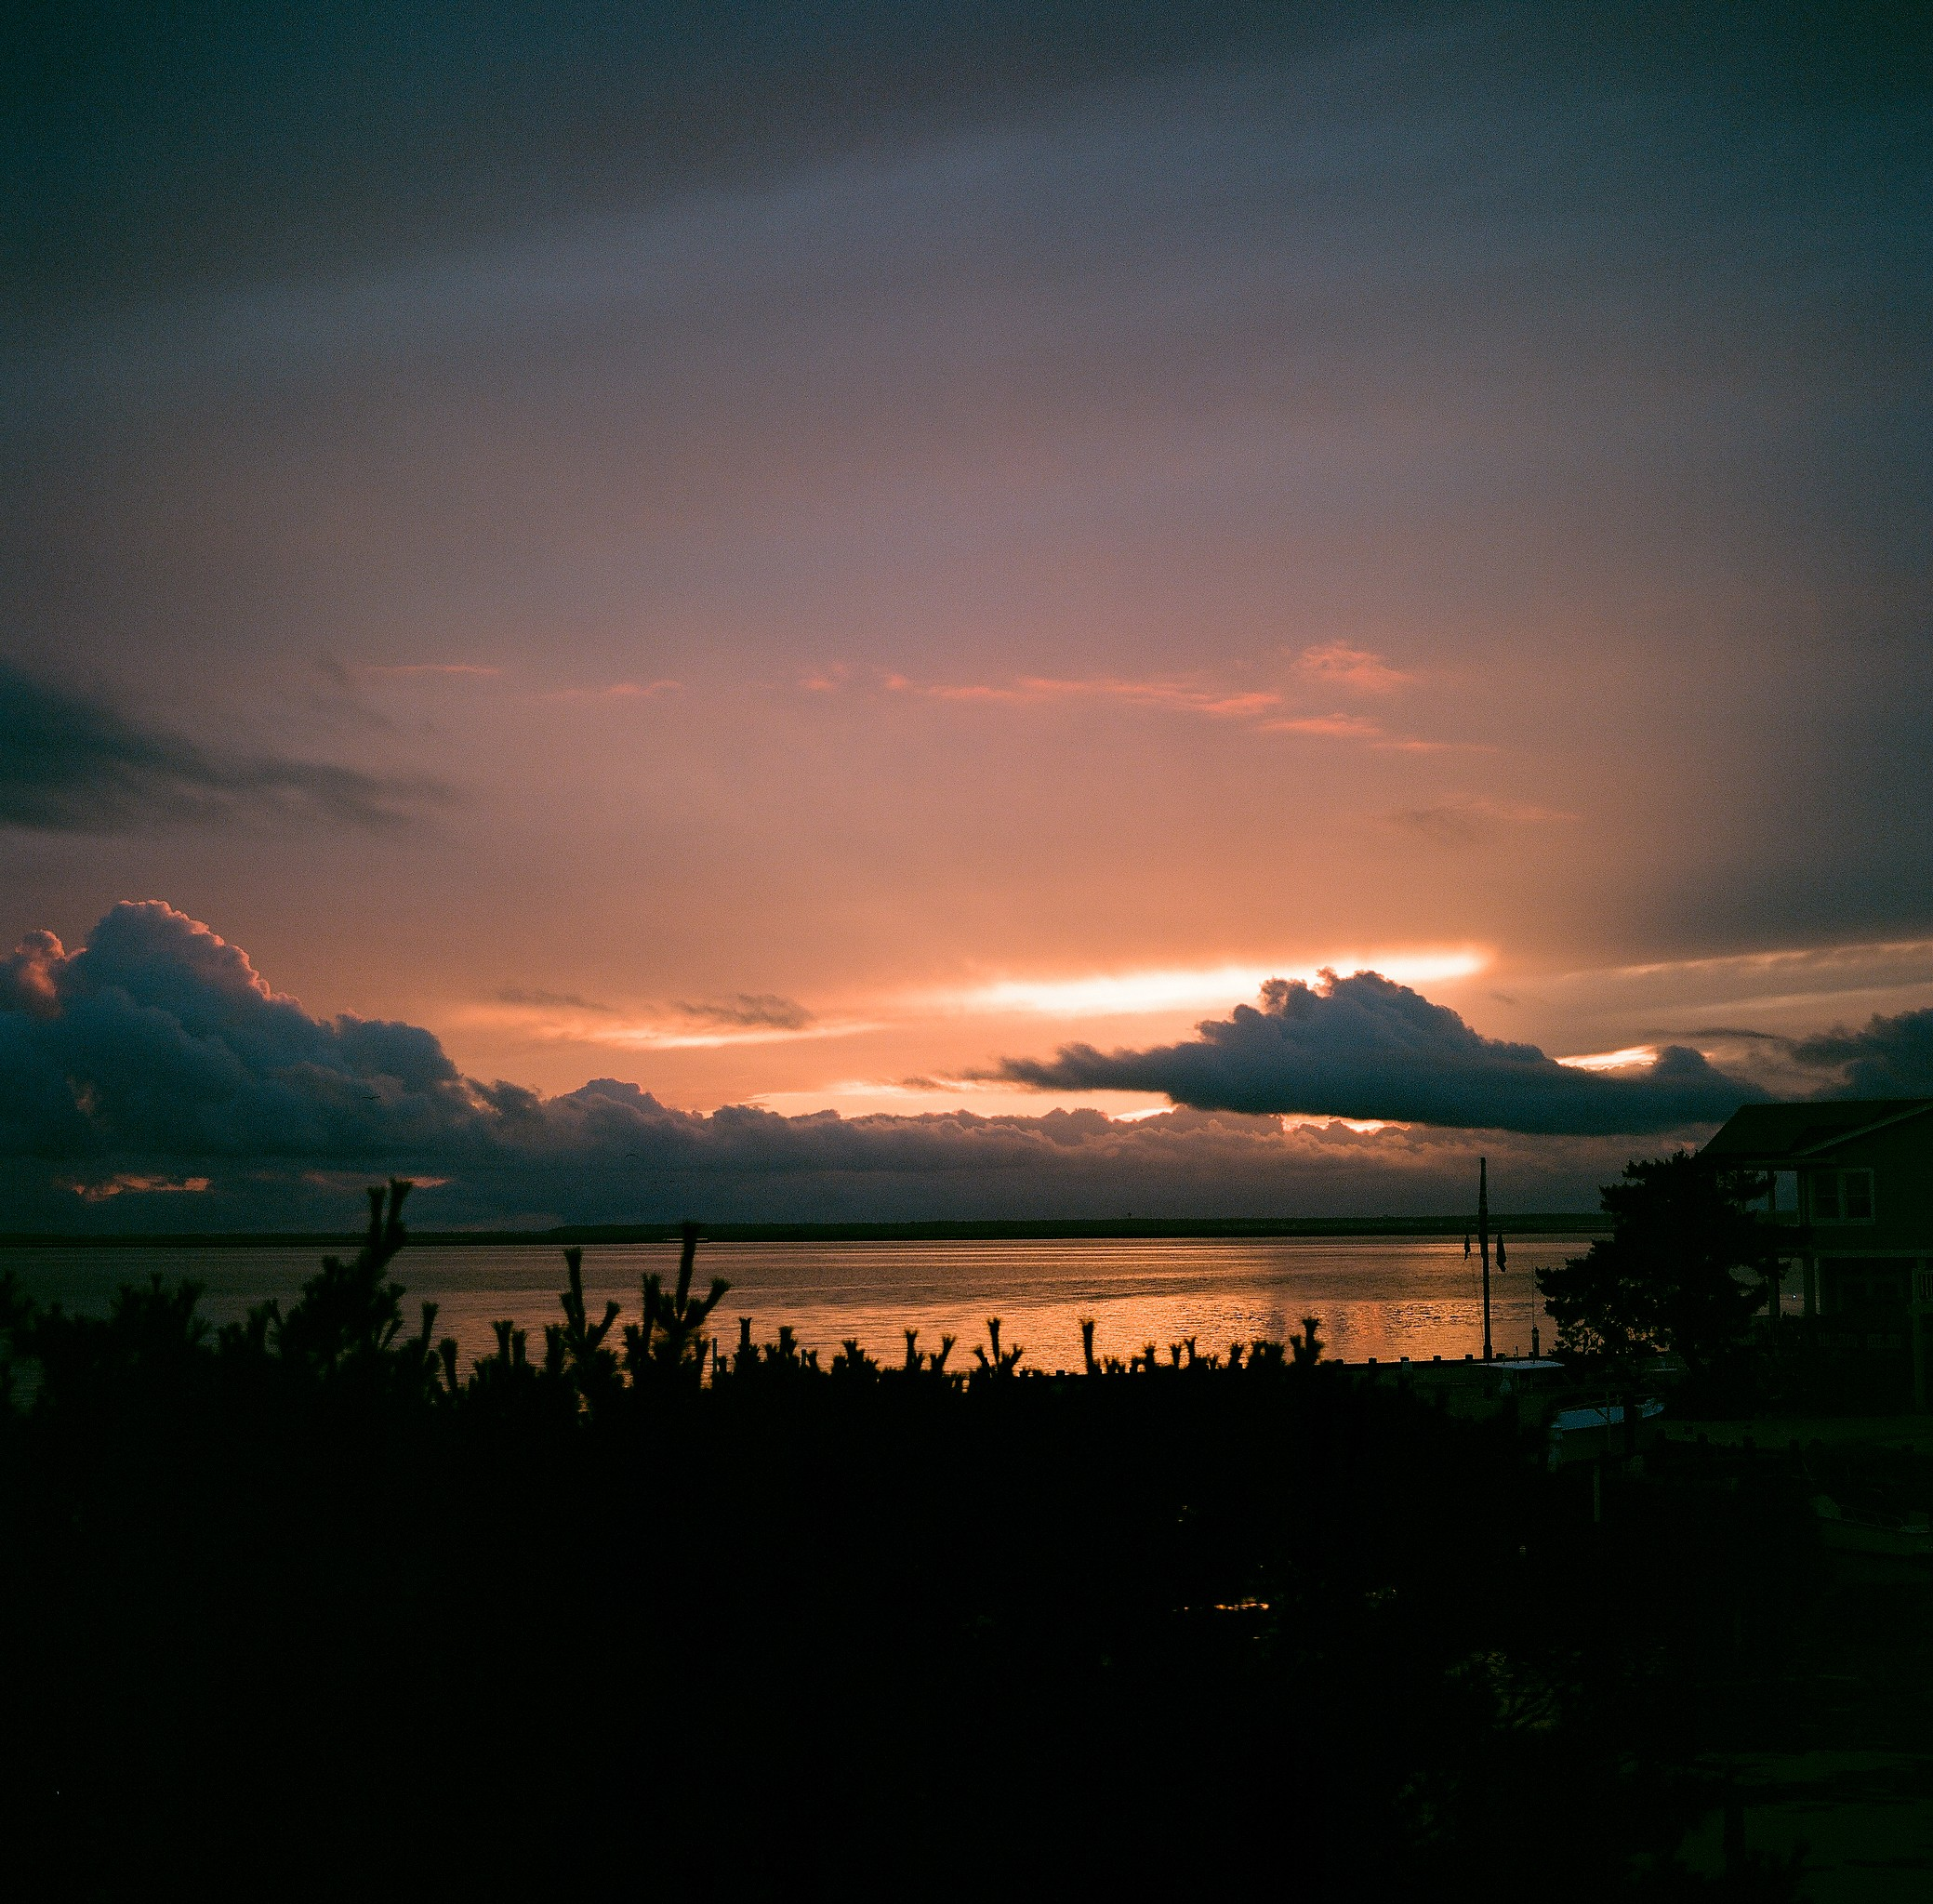 End of the sunset over the bay, shot on medium format film.